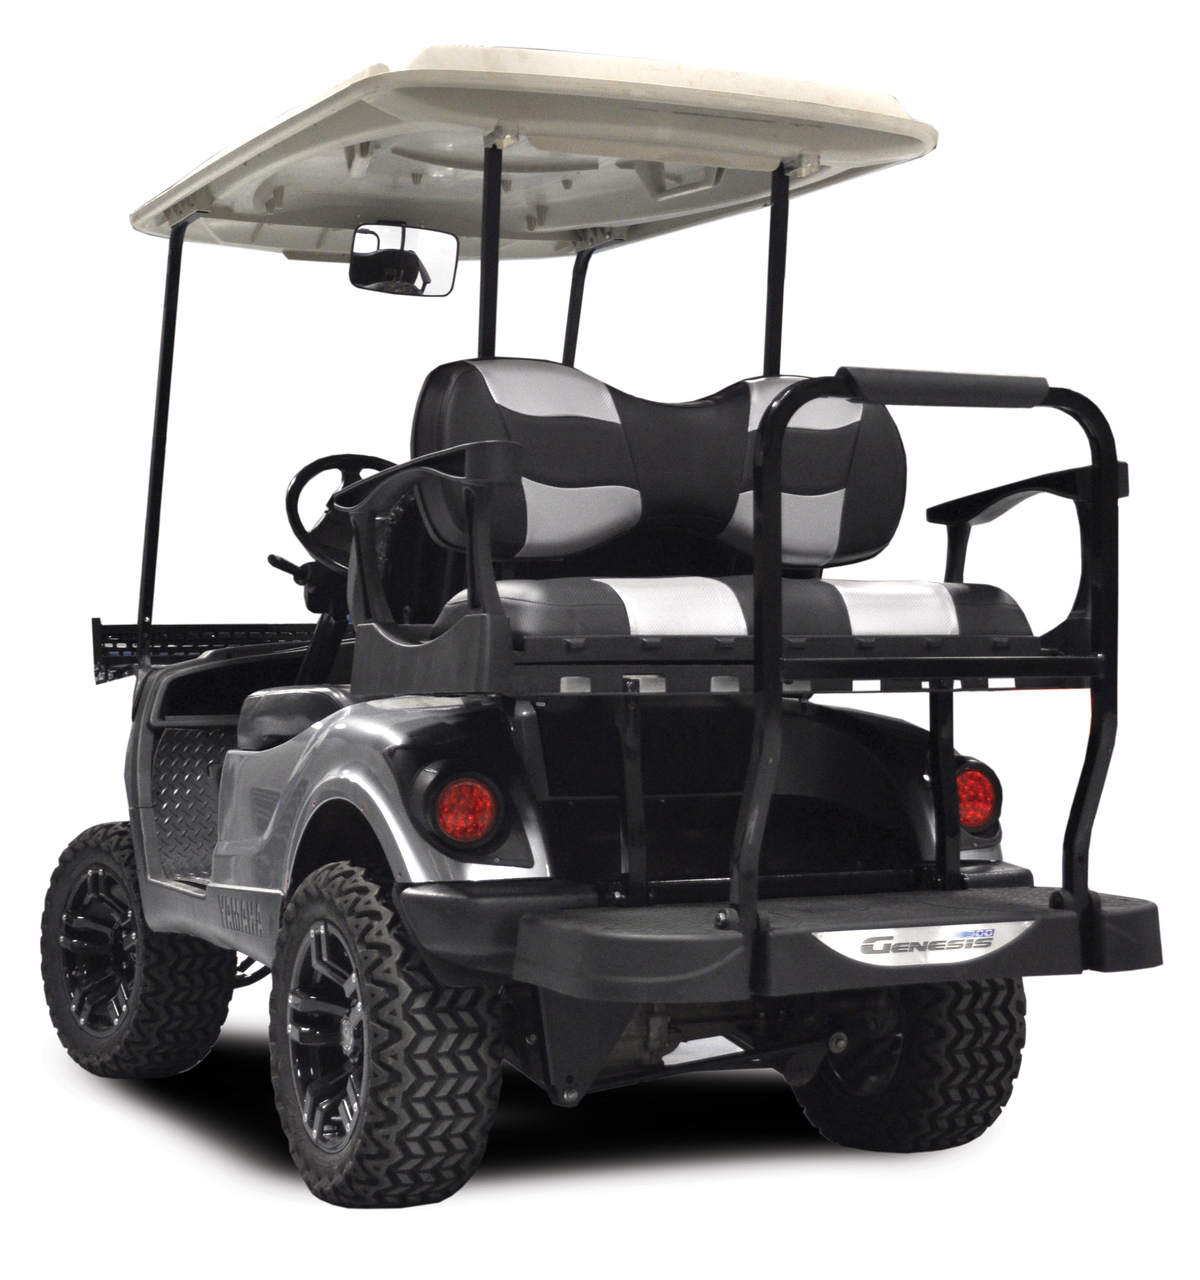 Picture of: Madjax Genesis 300 Ezgo Rear Flip Seat Kit With Aluminum Frame Deluxe Cushions For Txt Rxv Golf Cart King